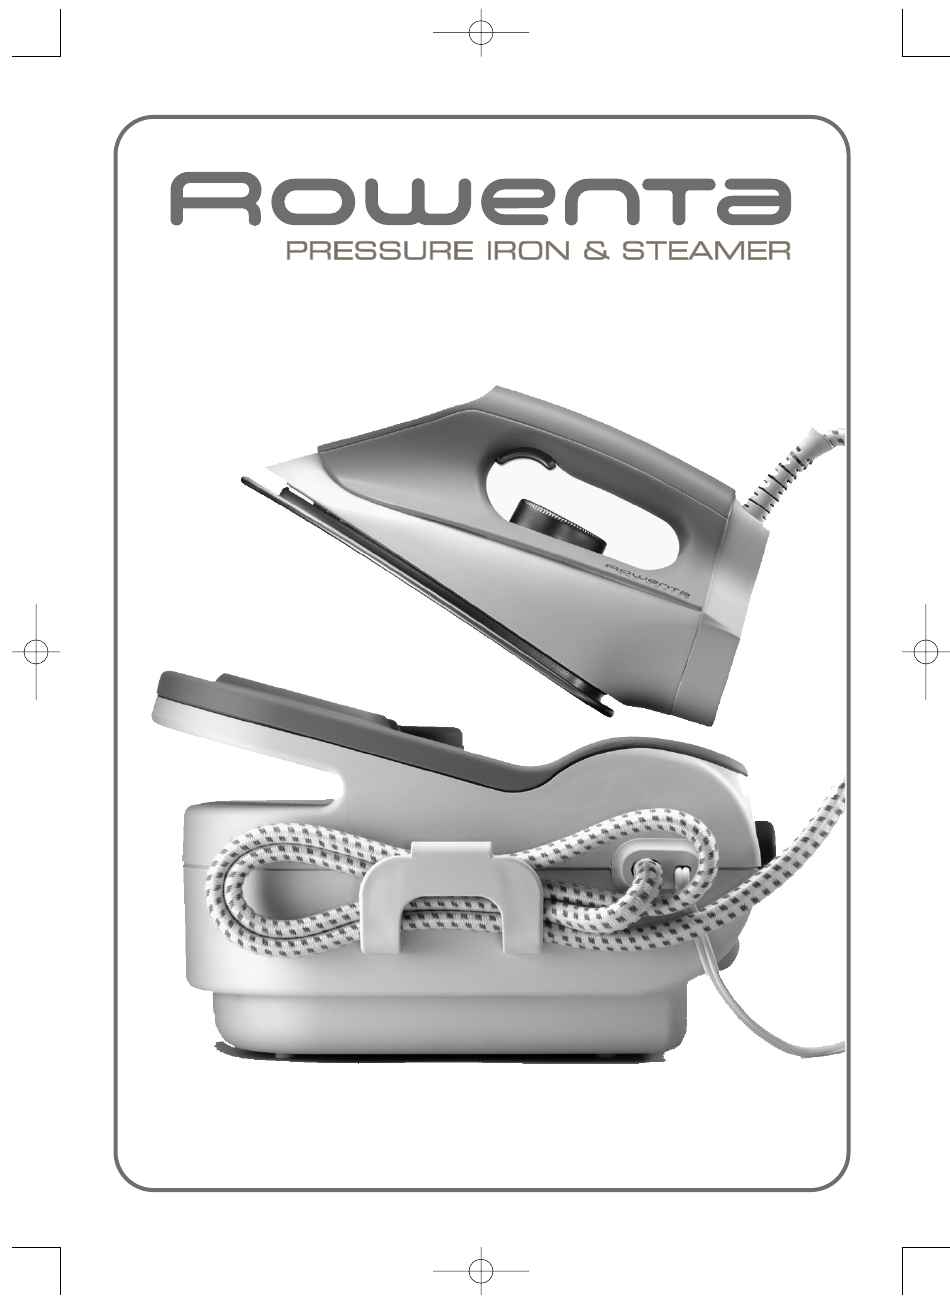 Rowenta pressure iron steamer styling iron user manual